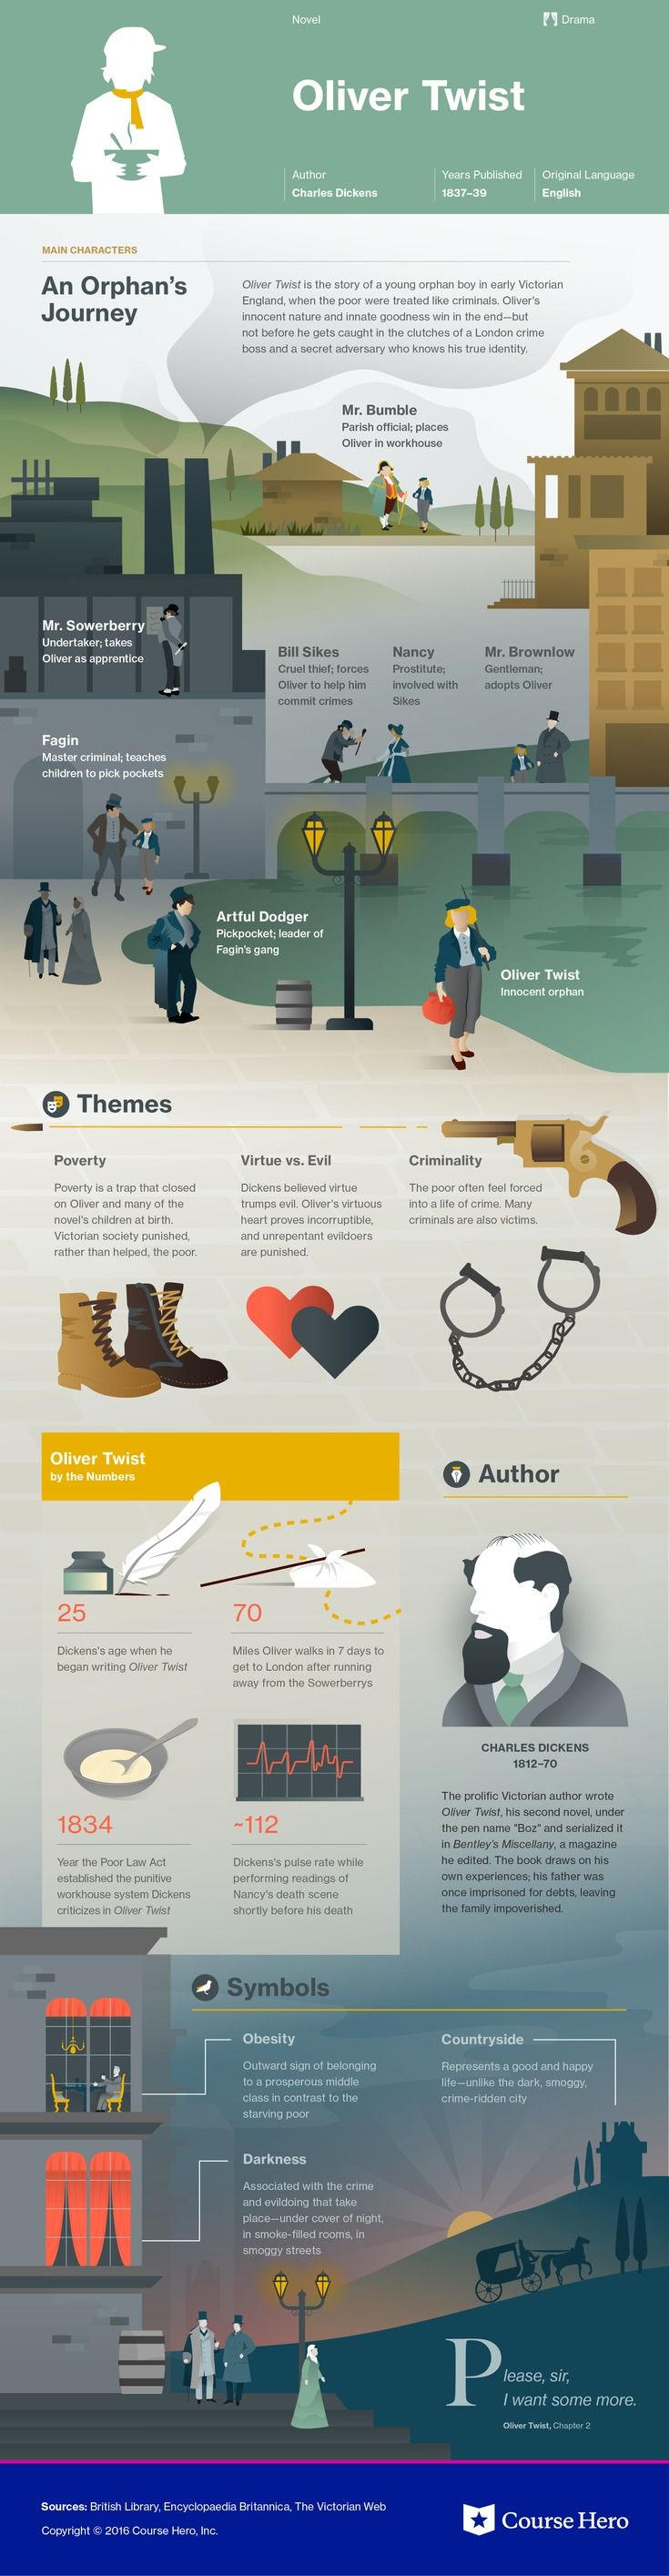 This @CourseHero infographic on Oliver Twist is both visually stunning and informative!